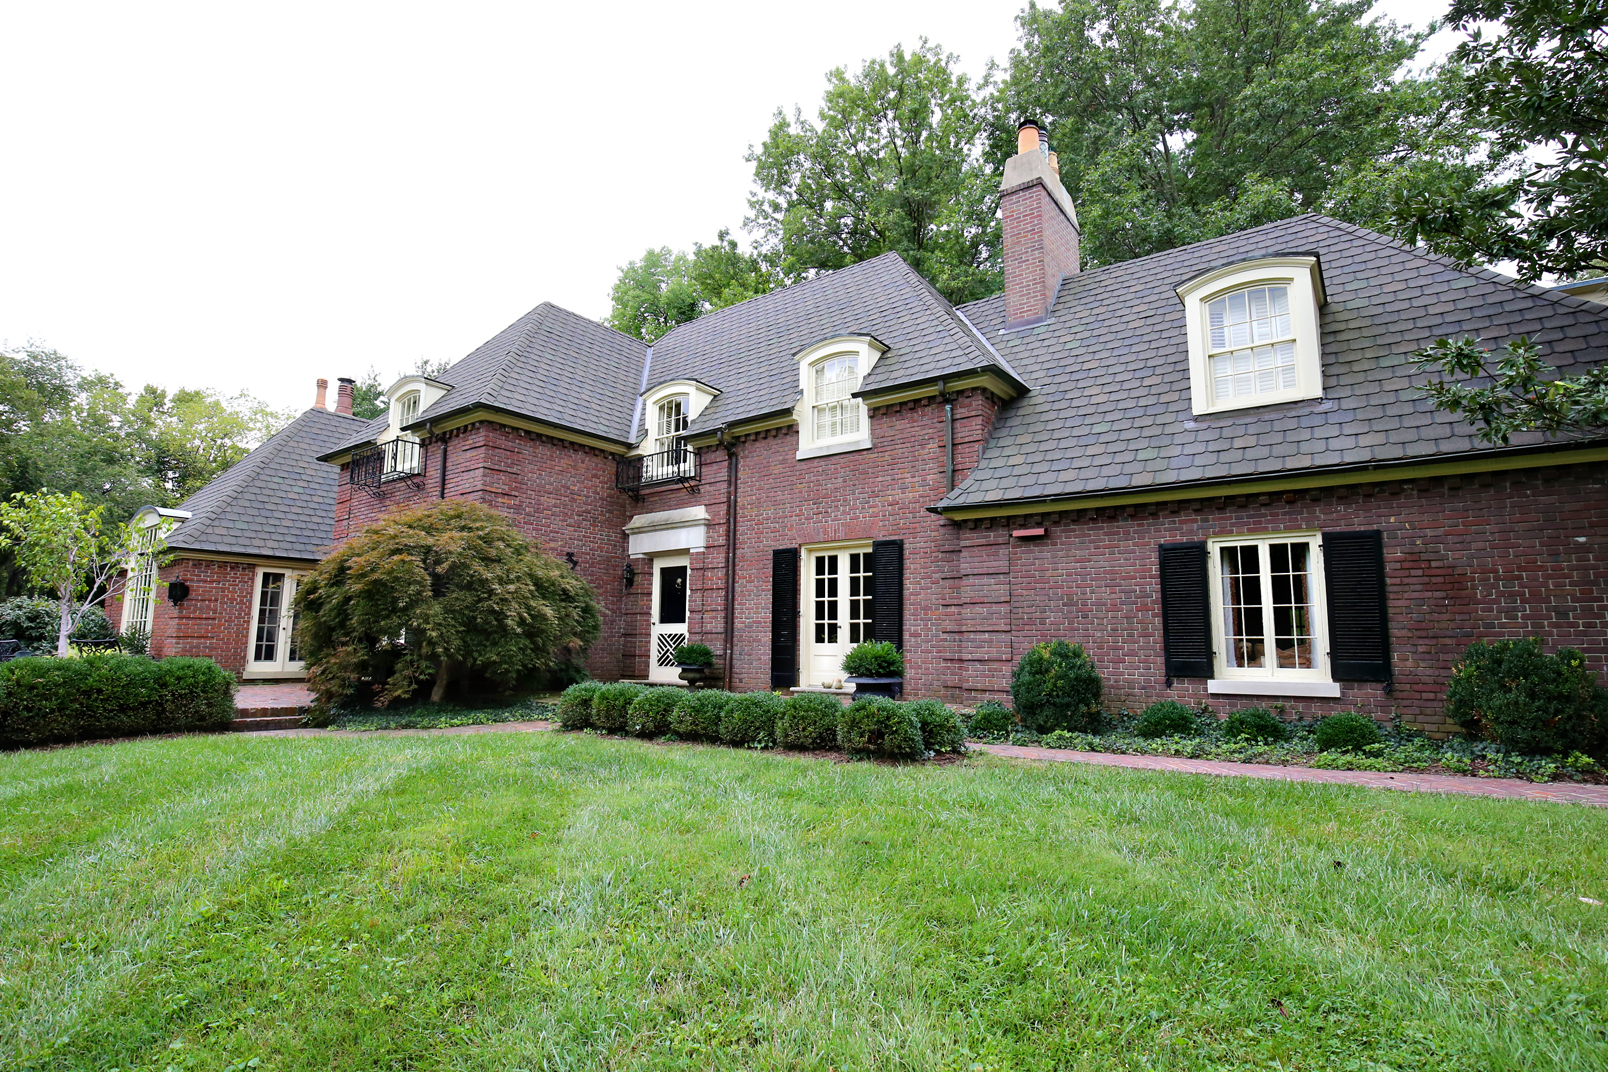 Single Family Home for Sale at 110 Tribal Road Louisville, Kentucky 40207 United States